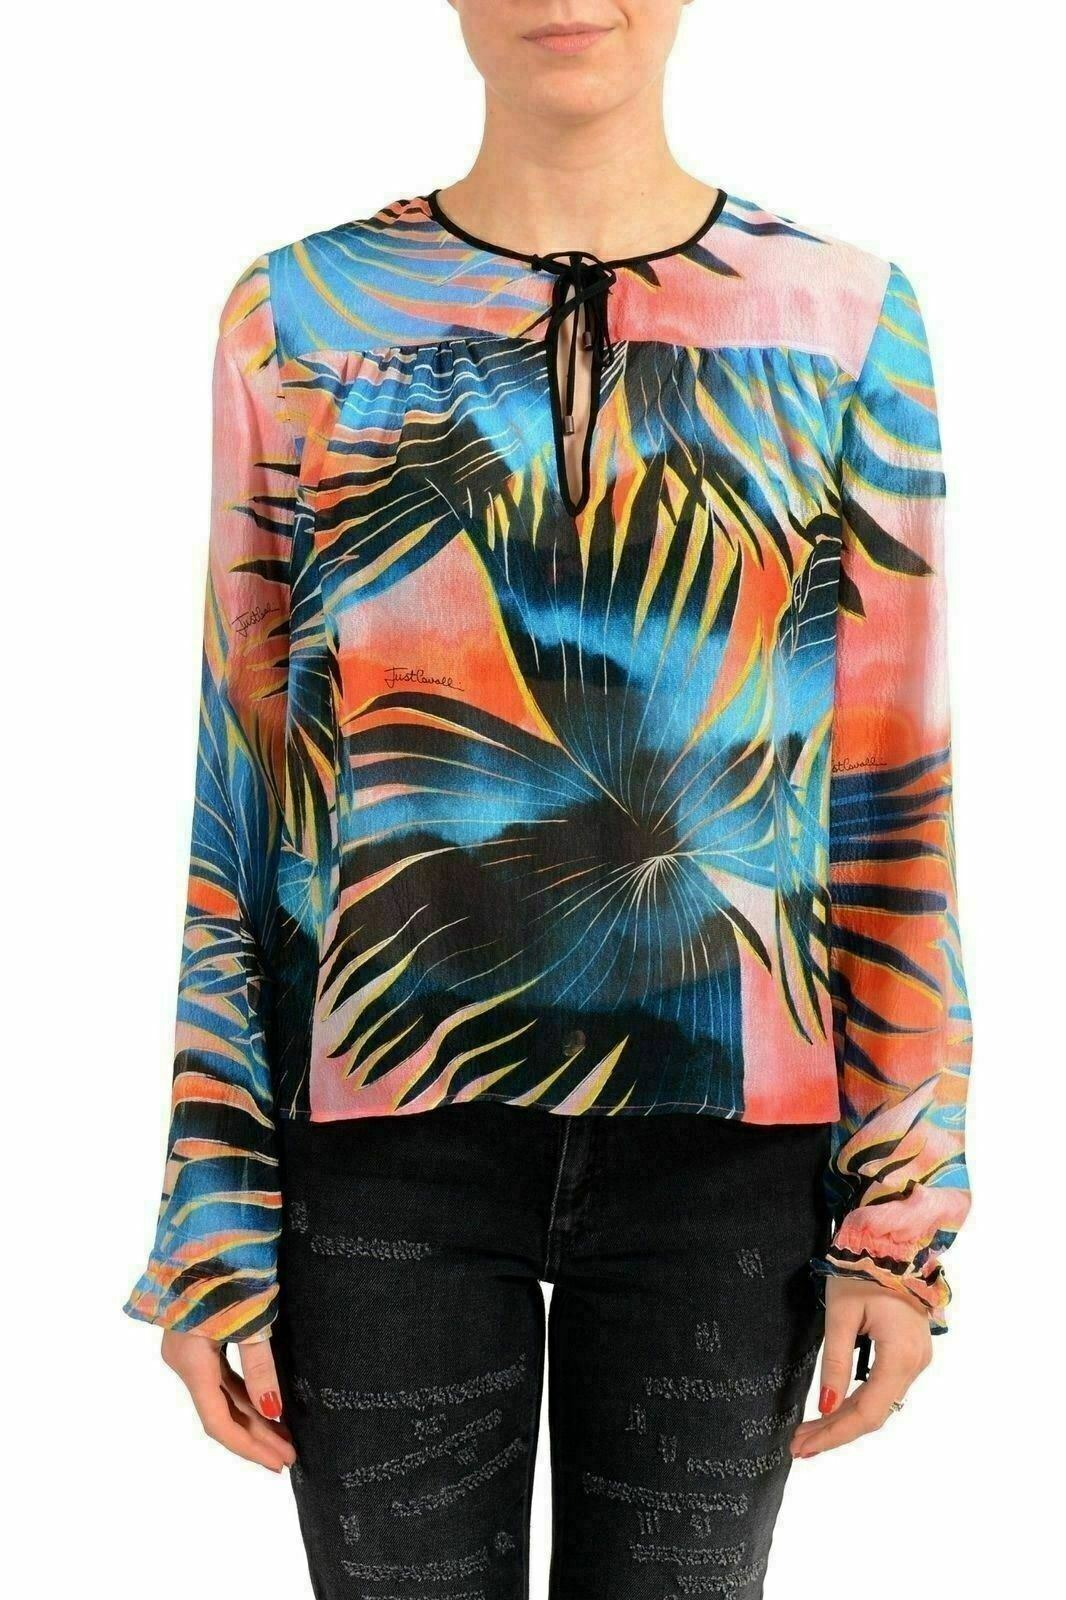 Just Cavalli 100% Seta Multicolore Manica Lunga Donna Camicetta USA S It 40